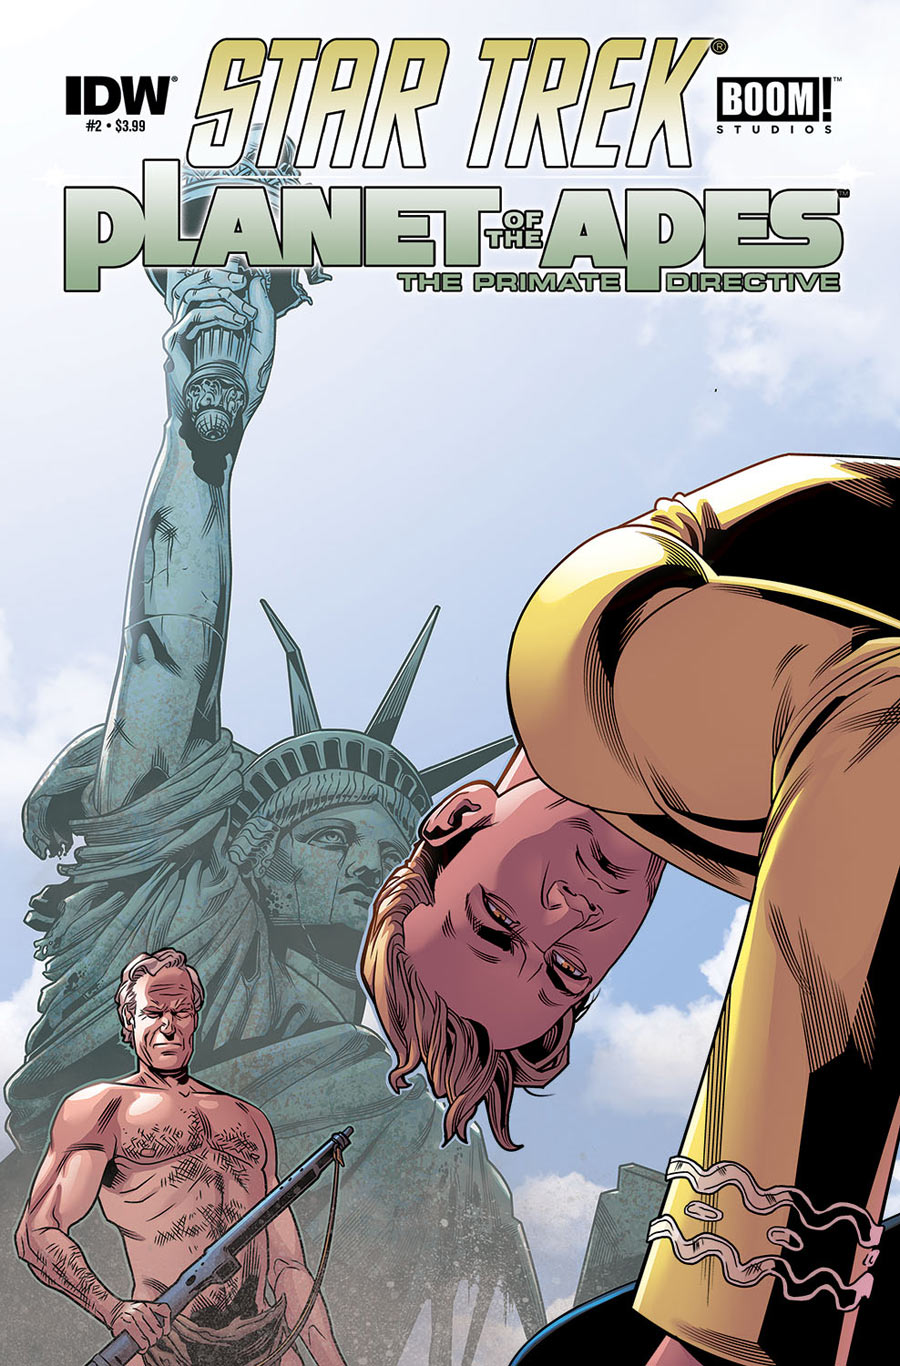 The Primate Directive Issue 2